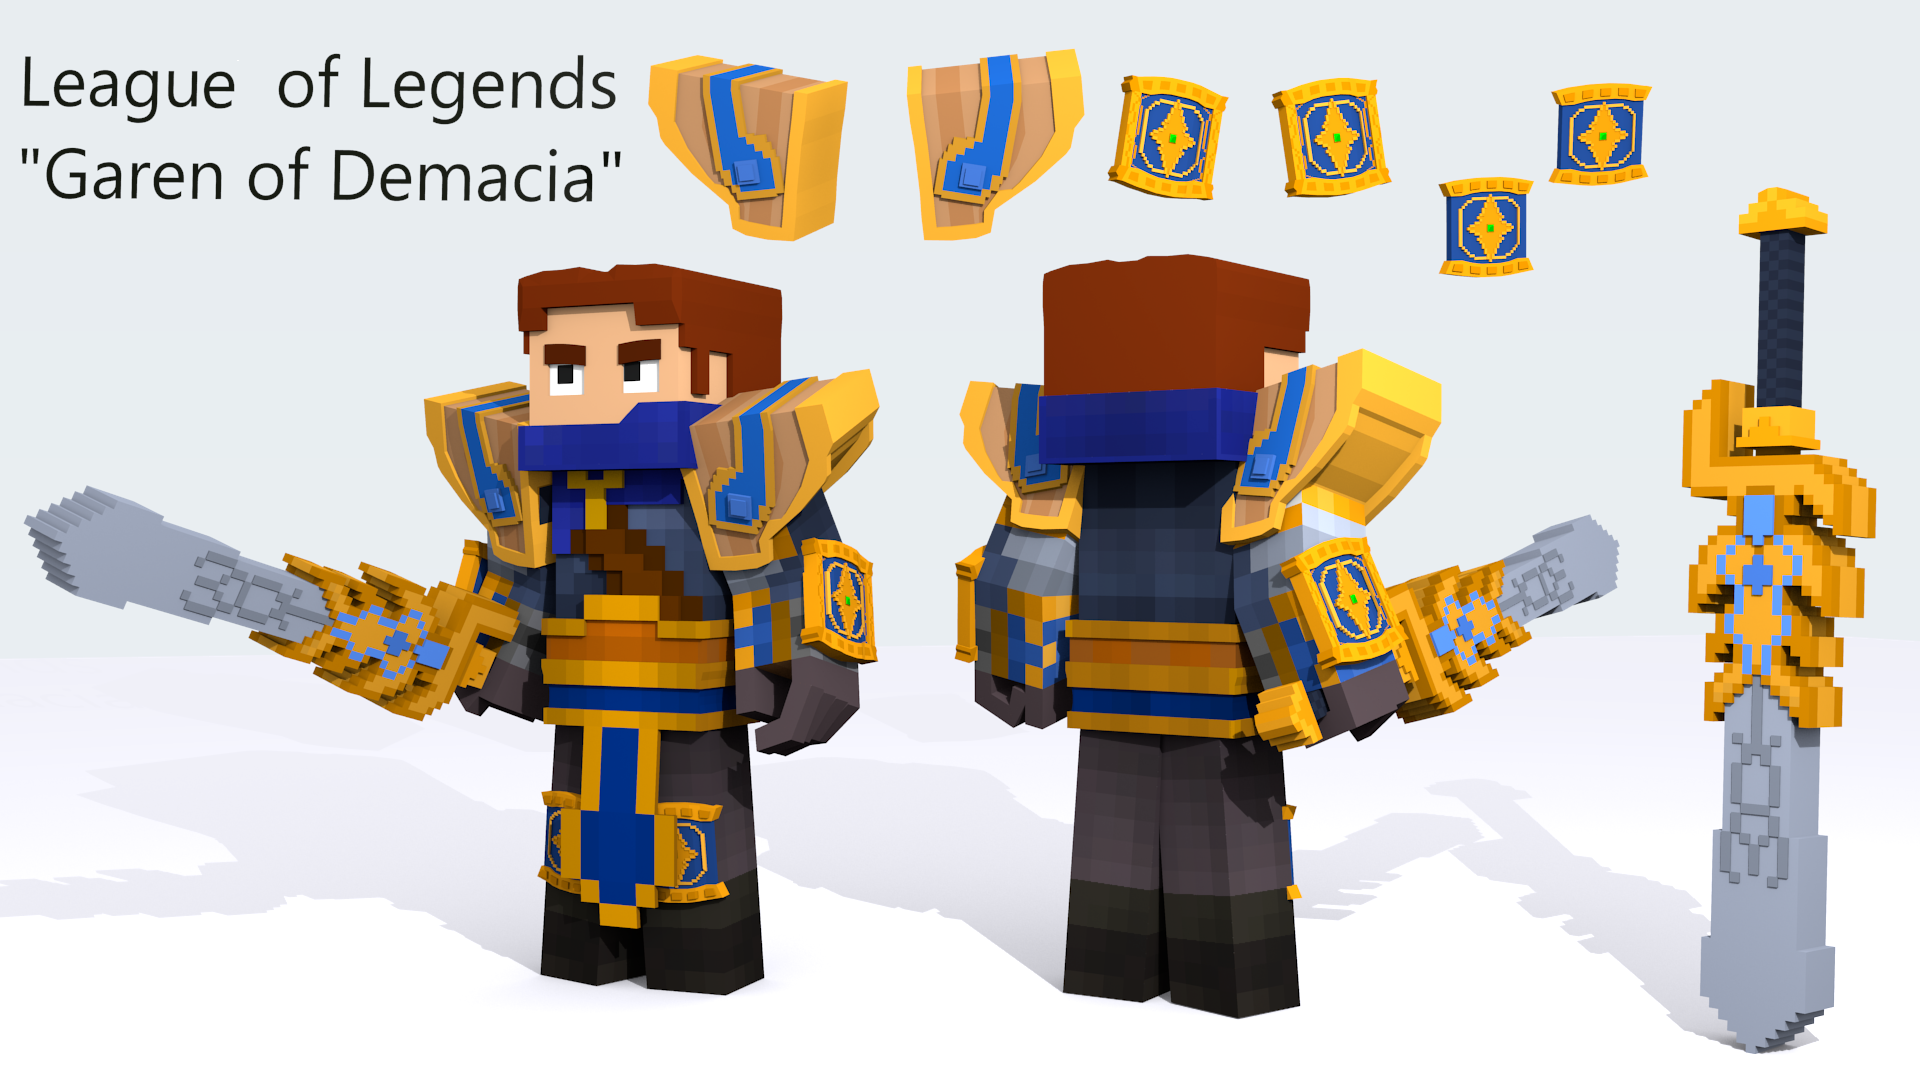 League of legends garen of demacia minecraft by kristian08 captain